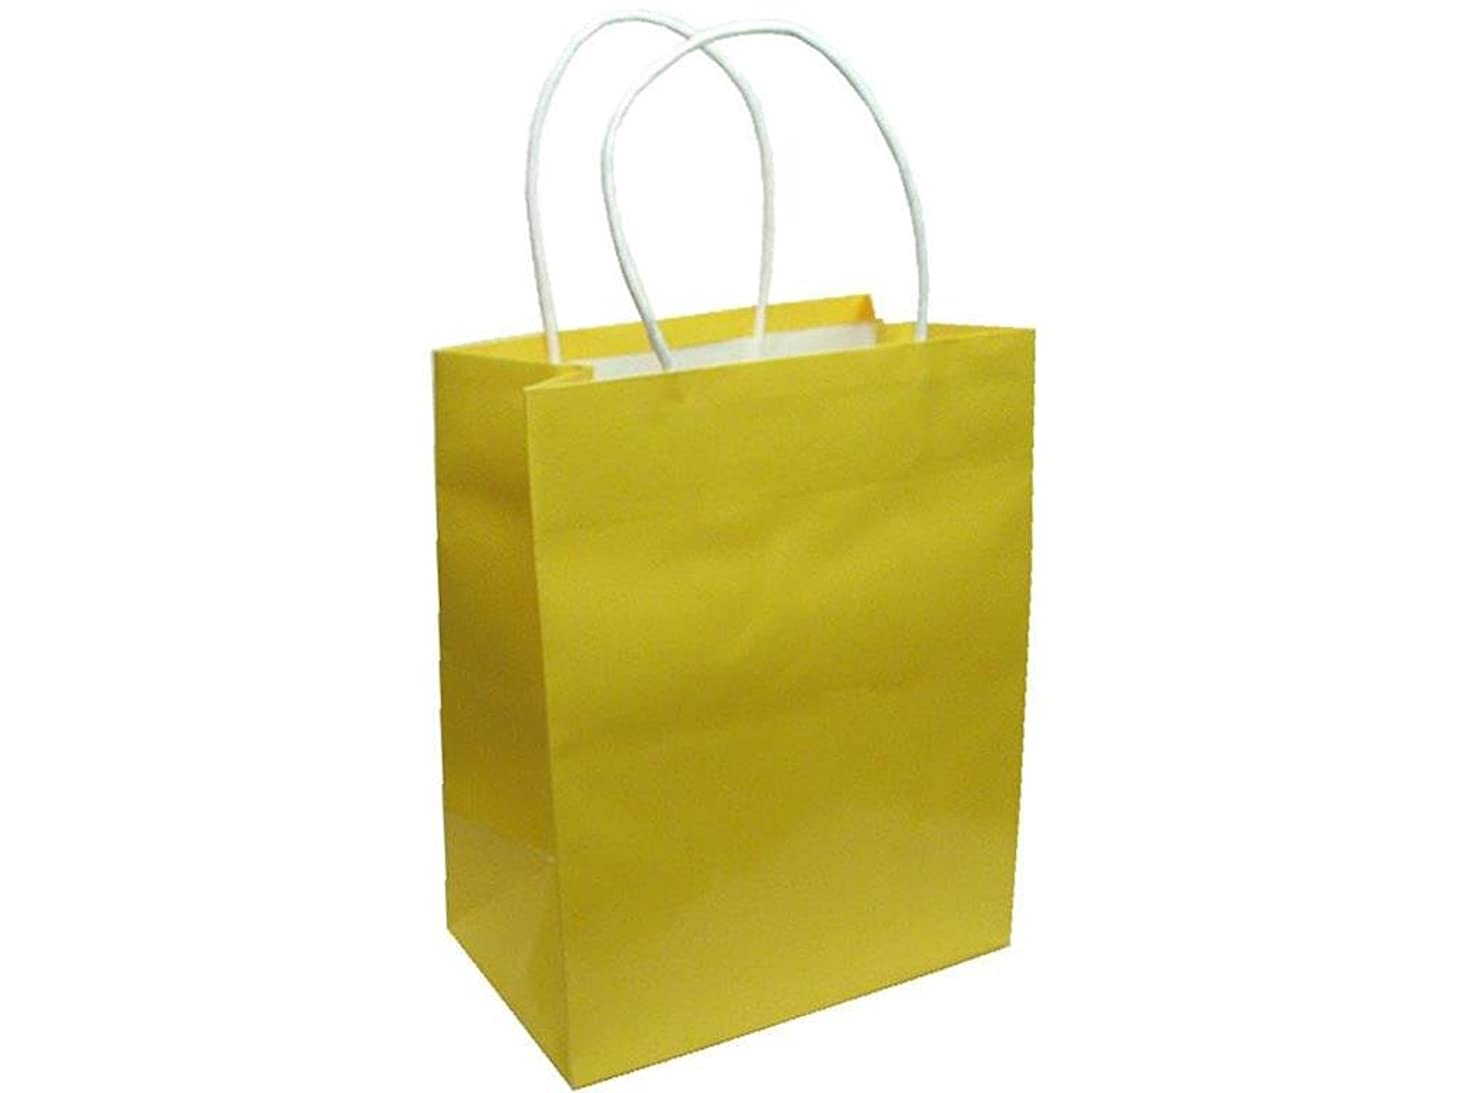 Cindus GiftBagClayCoatMedCanaryYellow Gift Bag Clay Coat Med Canary Yellow